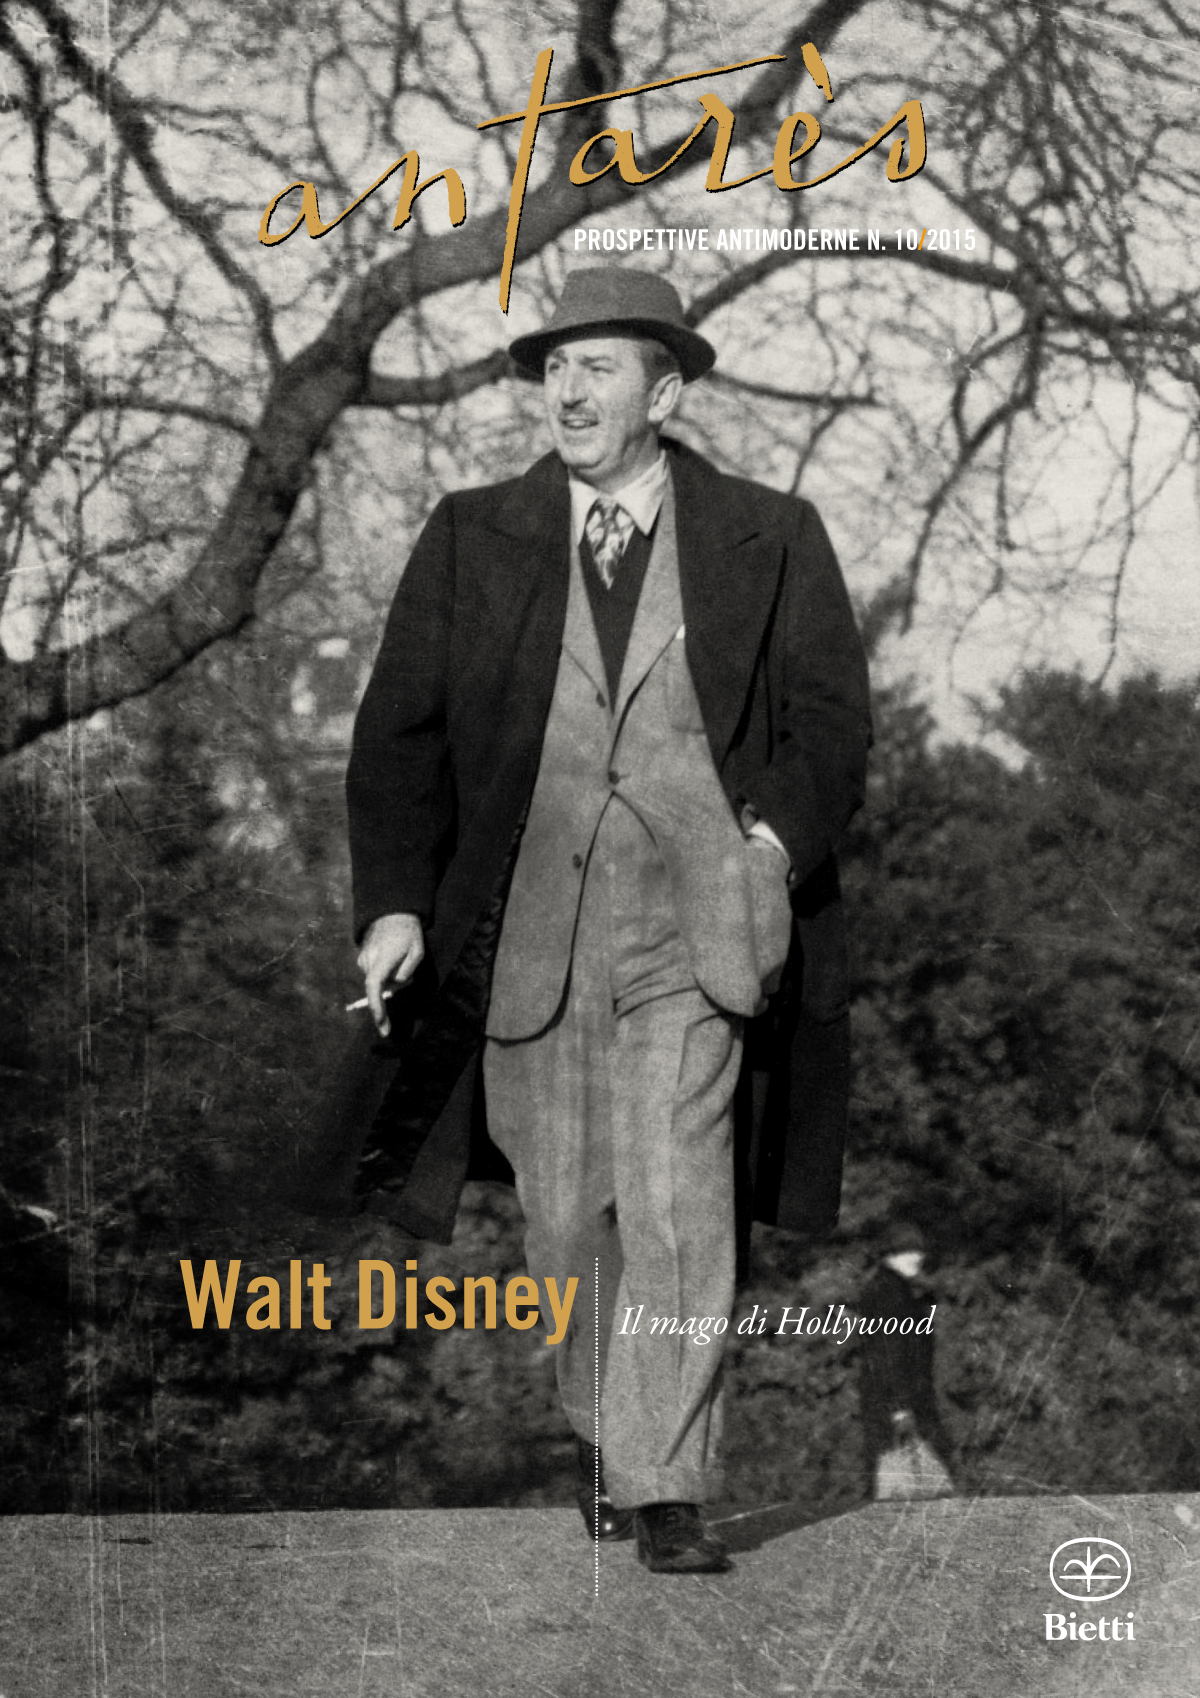 Walt Disney - Il mago di Hollywood